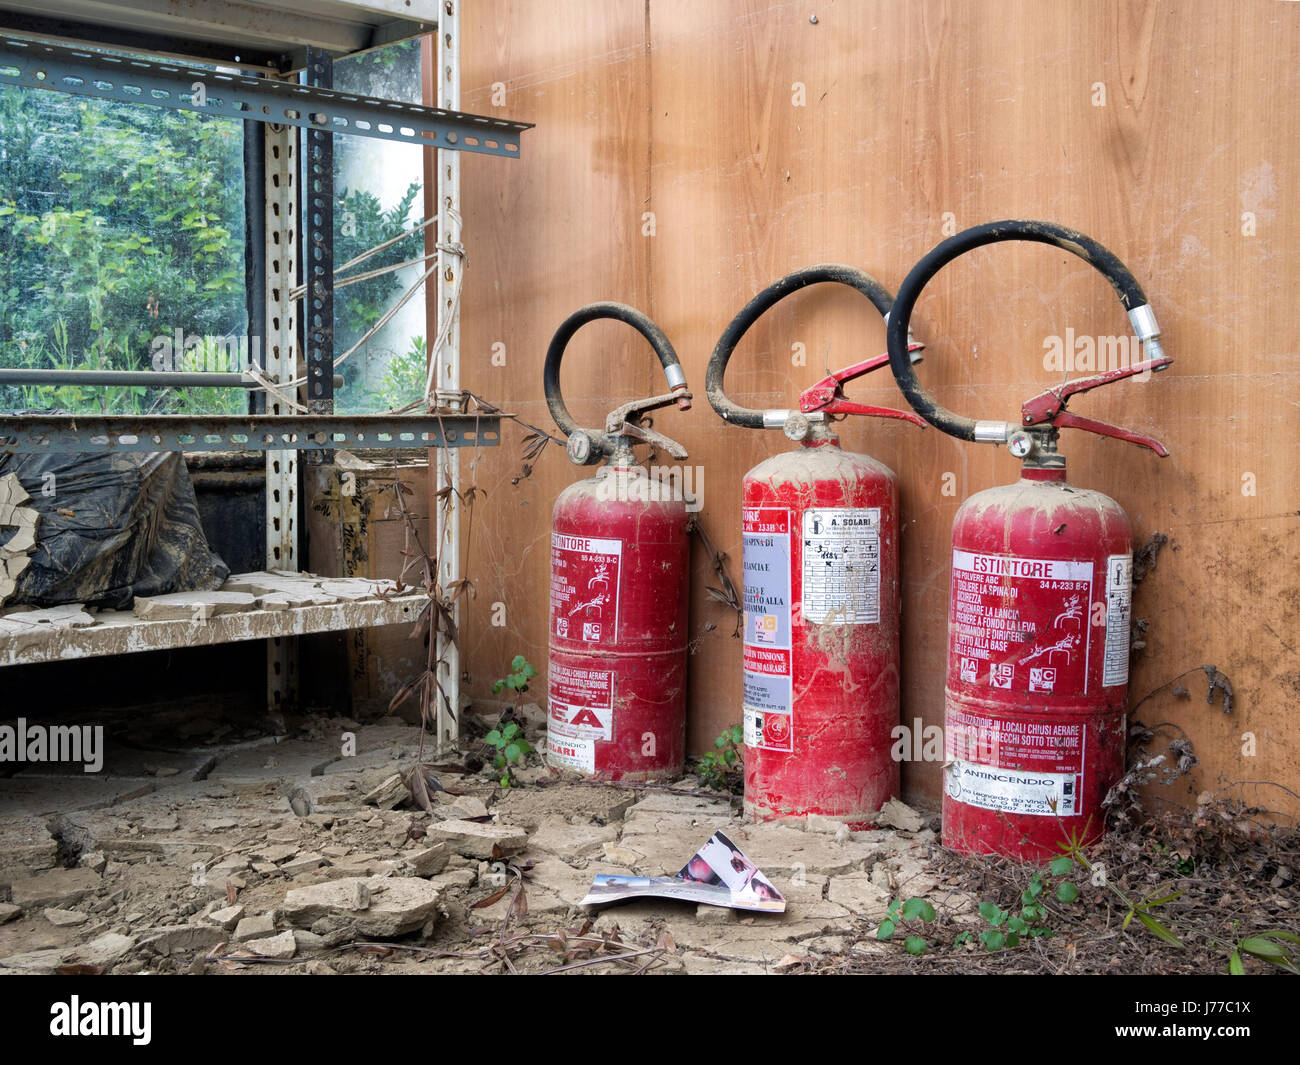 Abandoned and forgotten fire extinguishers in old building. Italy. - Stock Image